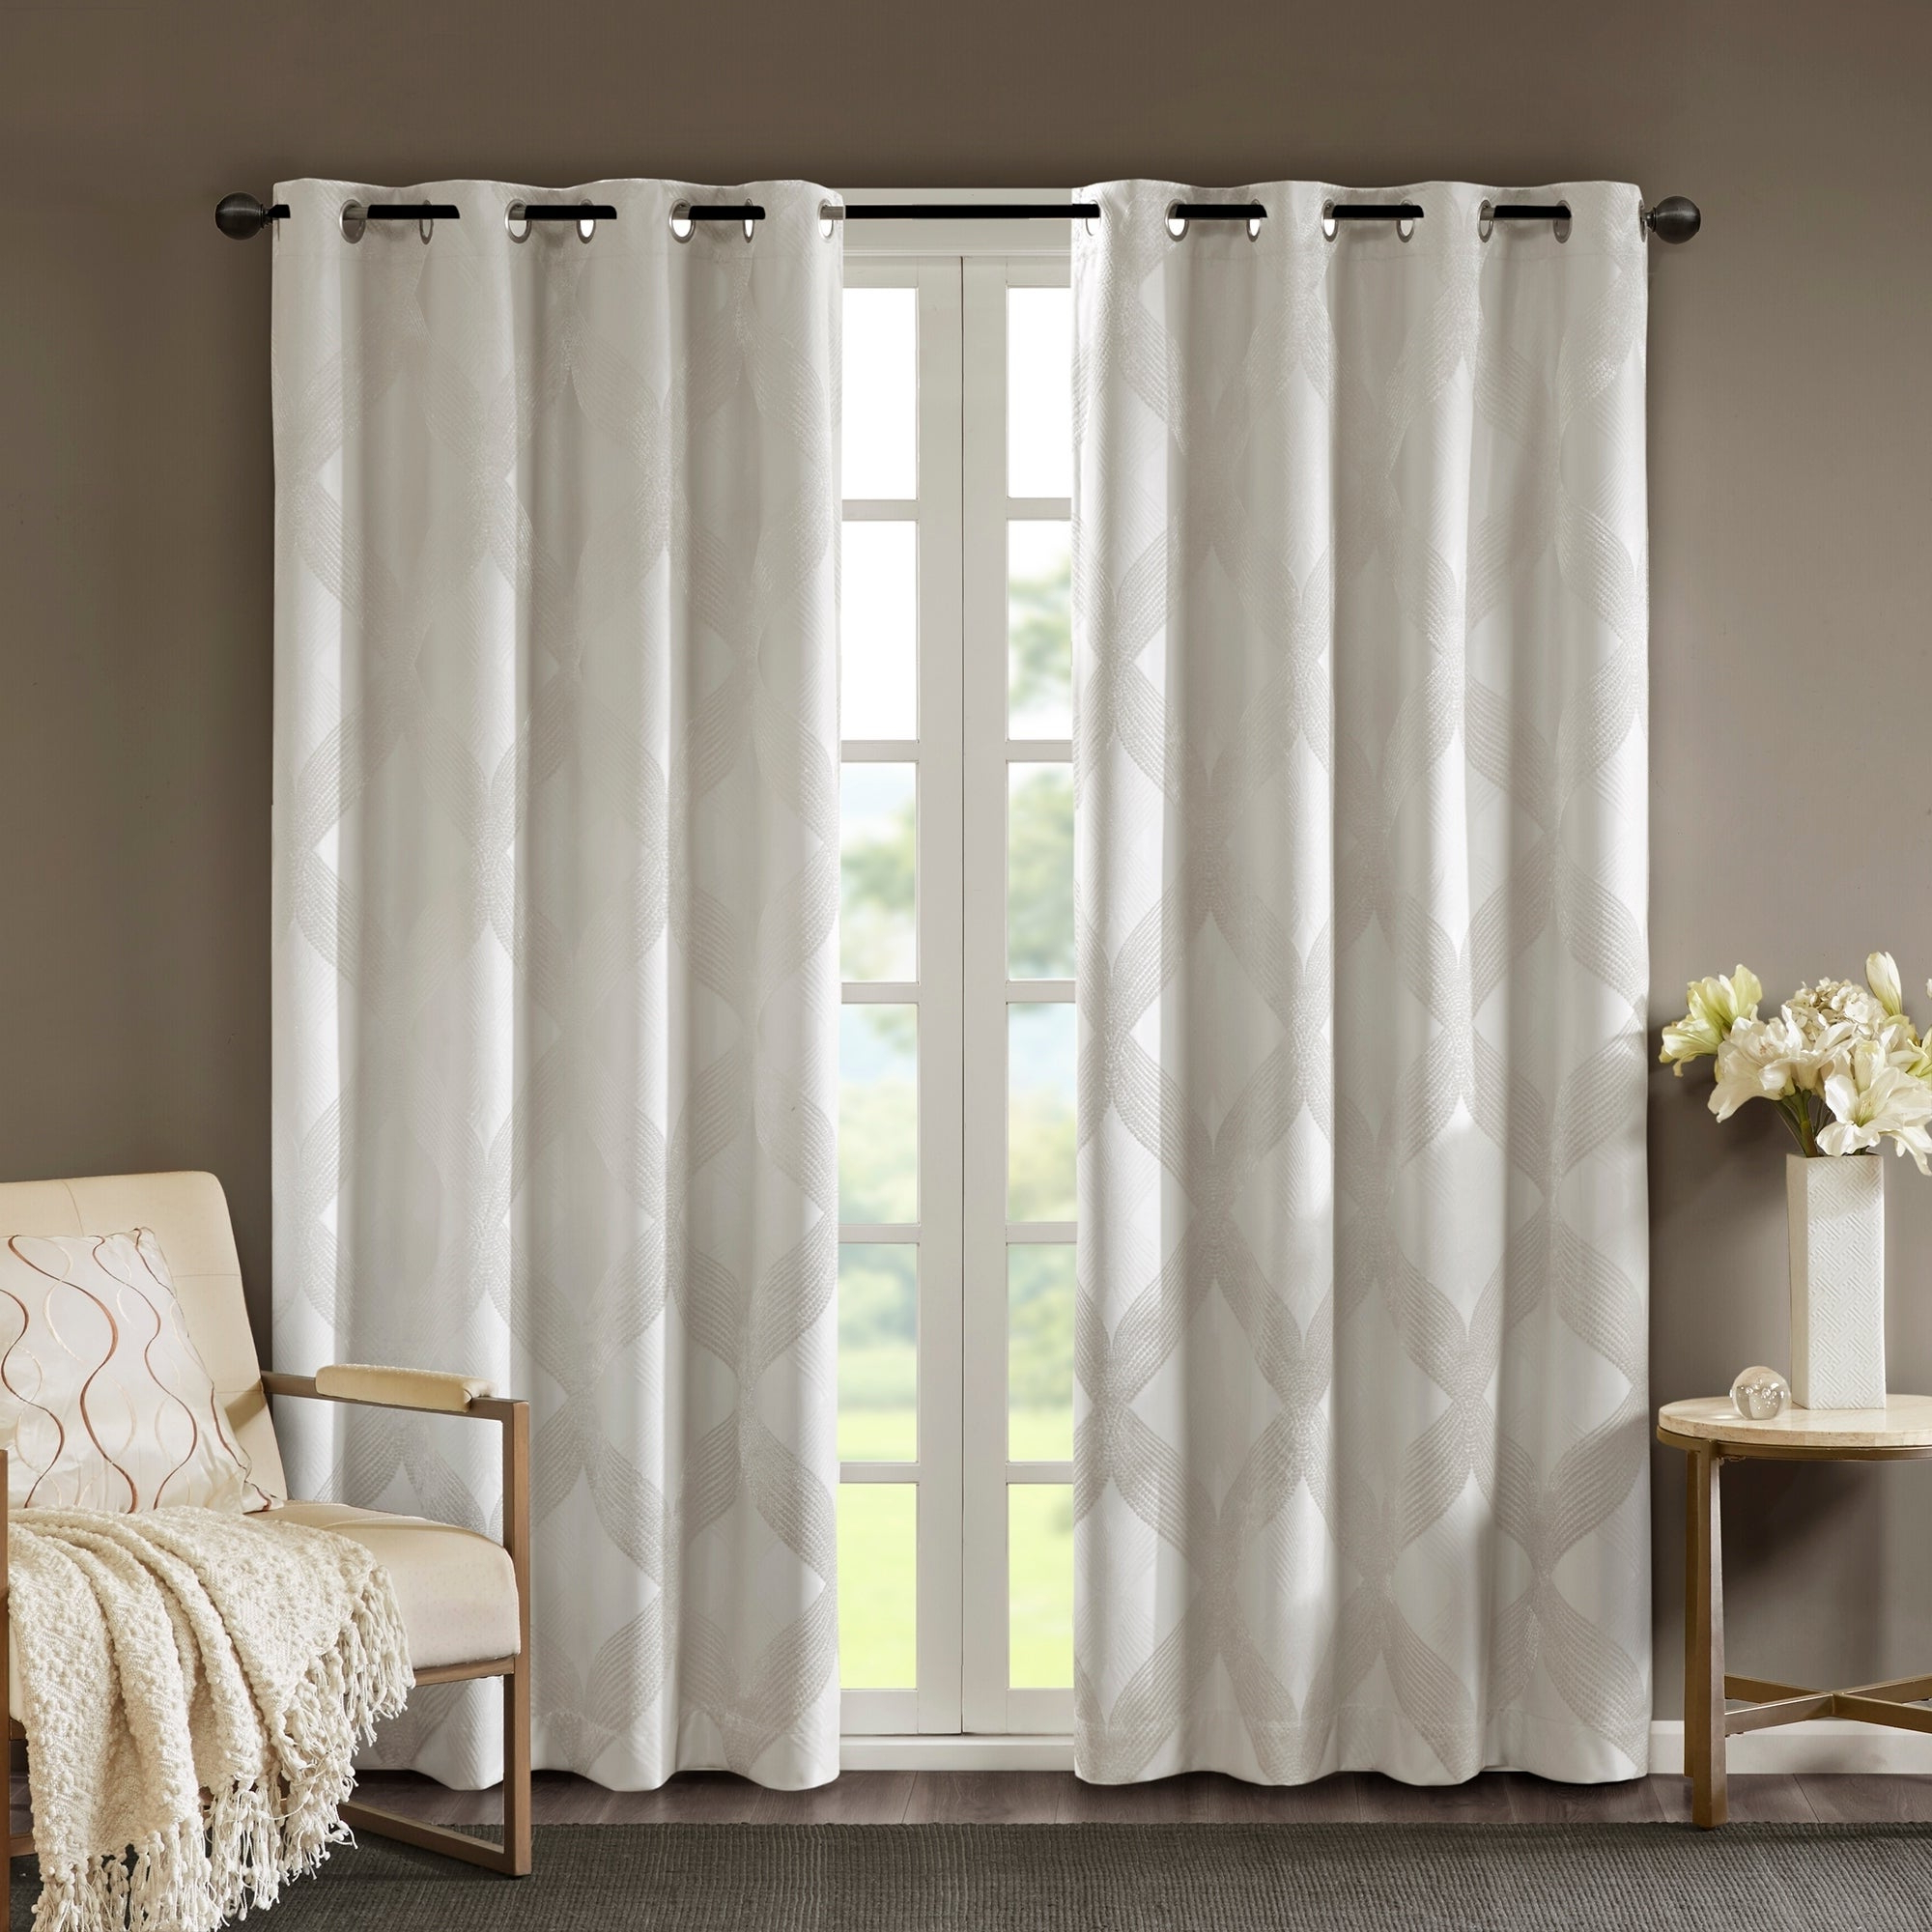 Sunsmart Abel Ogee Knitted Jacquard Total Blackout Curtain Panel Inside Latest Gracewood Hollow Tucakovic Energy Efficient Fabric Blackout Curtains (View 19 of 20)